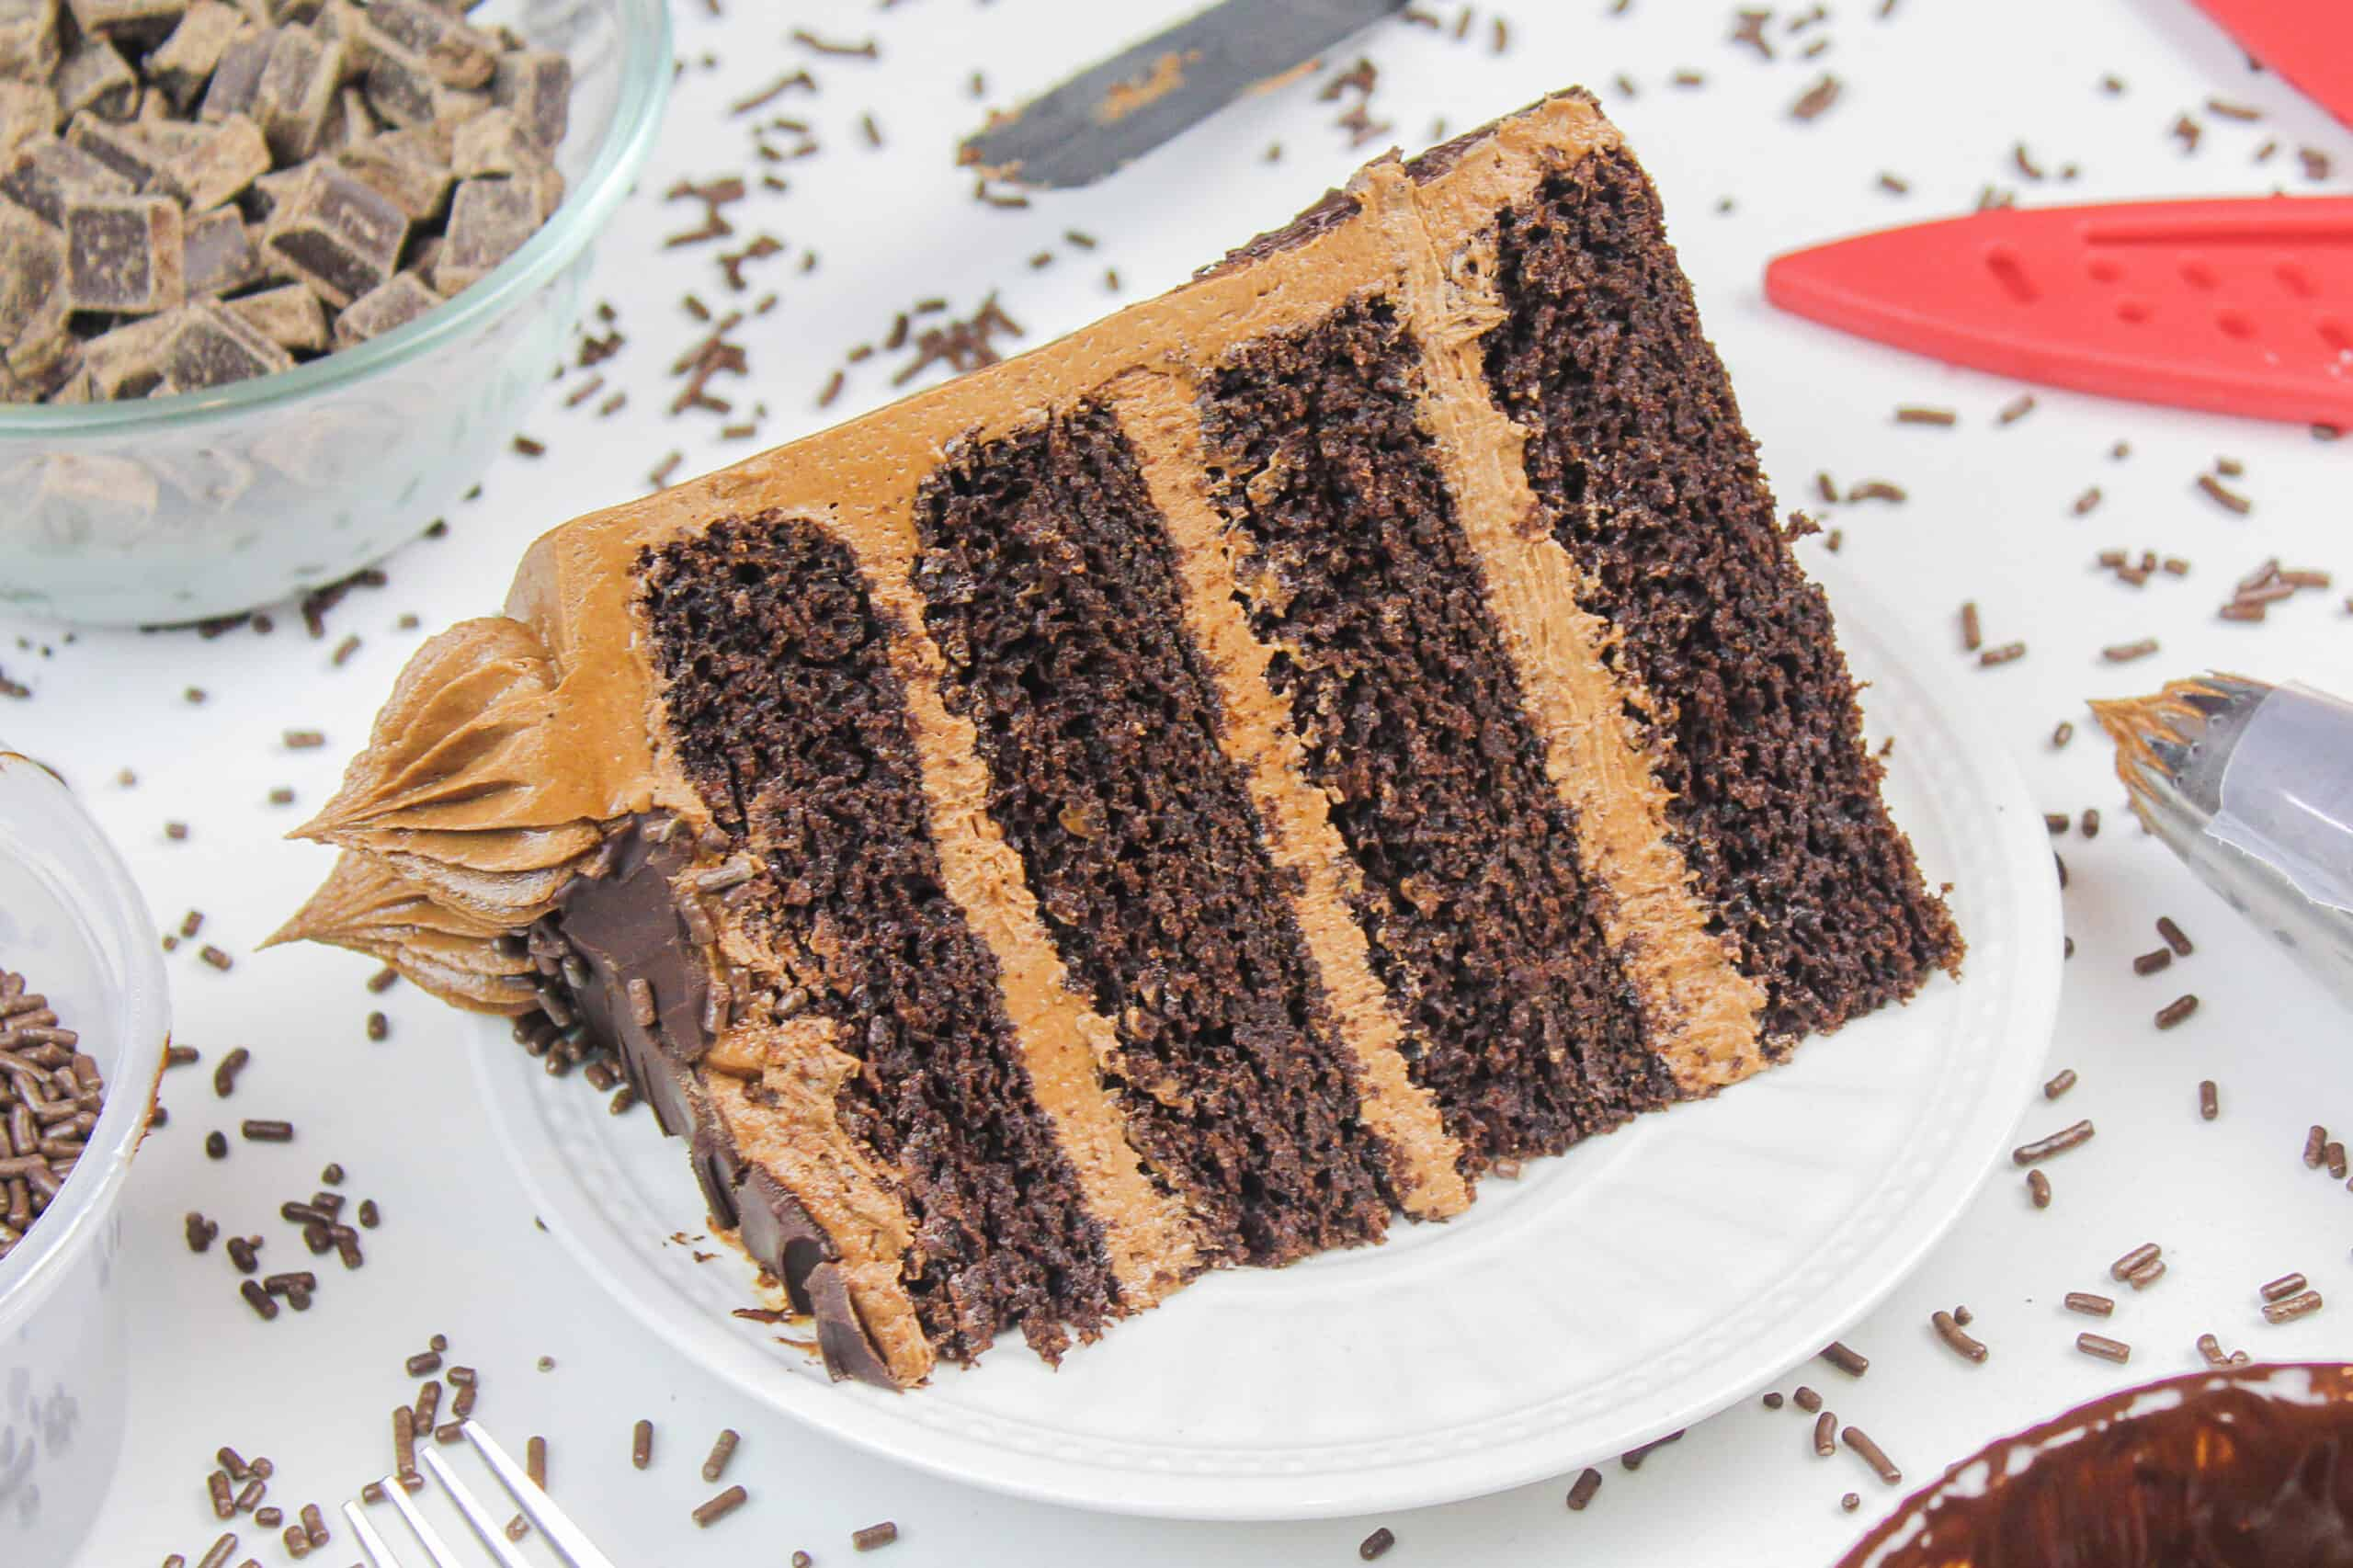 image of a slice of a moist and delicious gluten free chocolate cake with chocolate buttercream